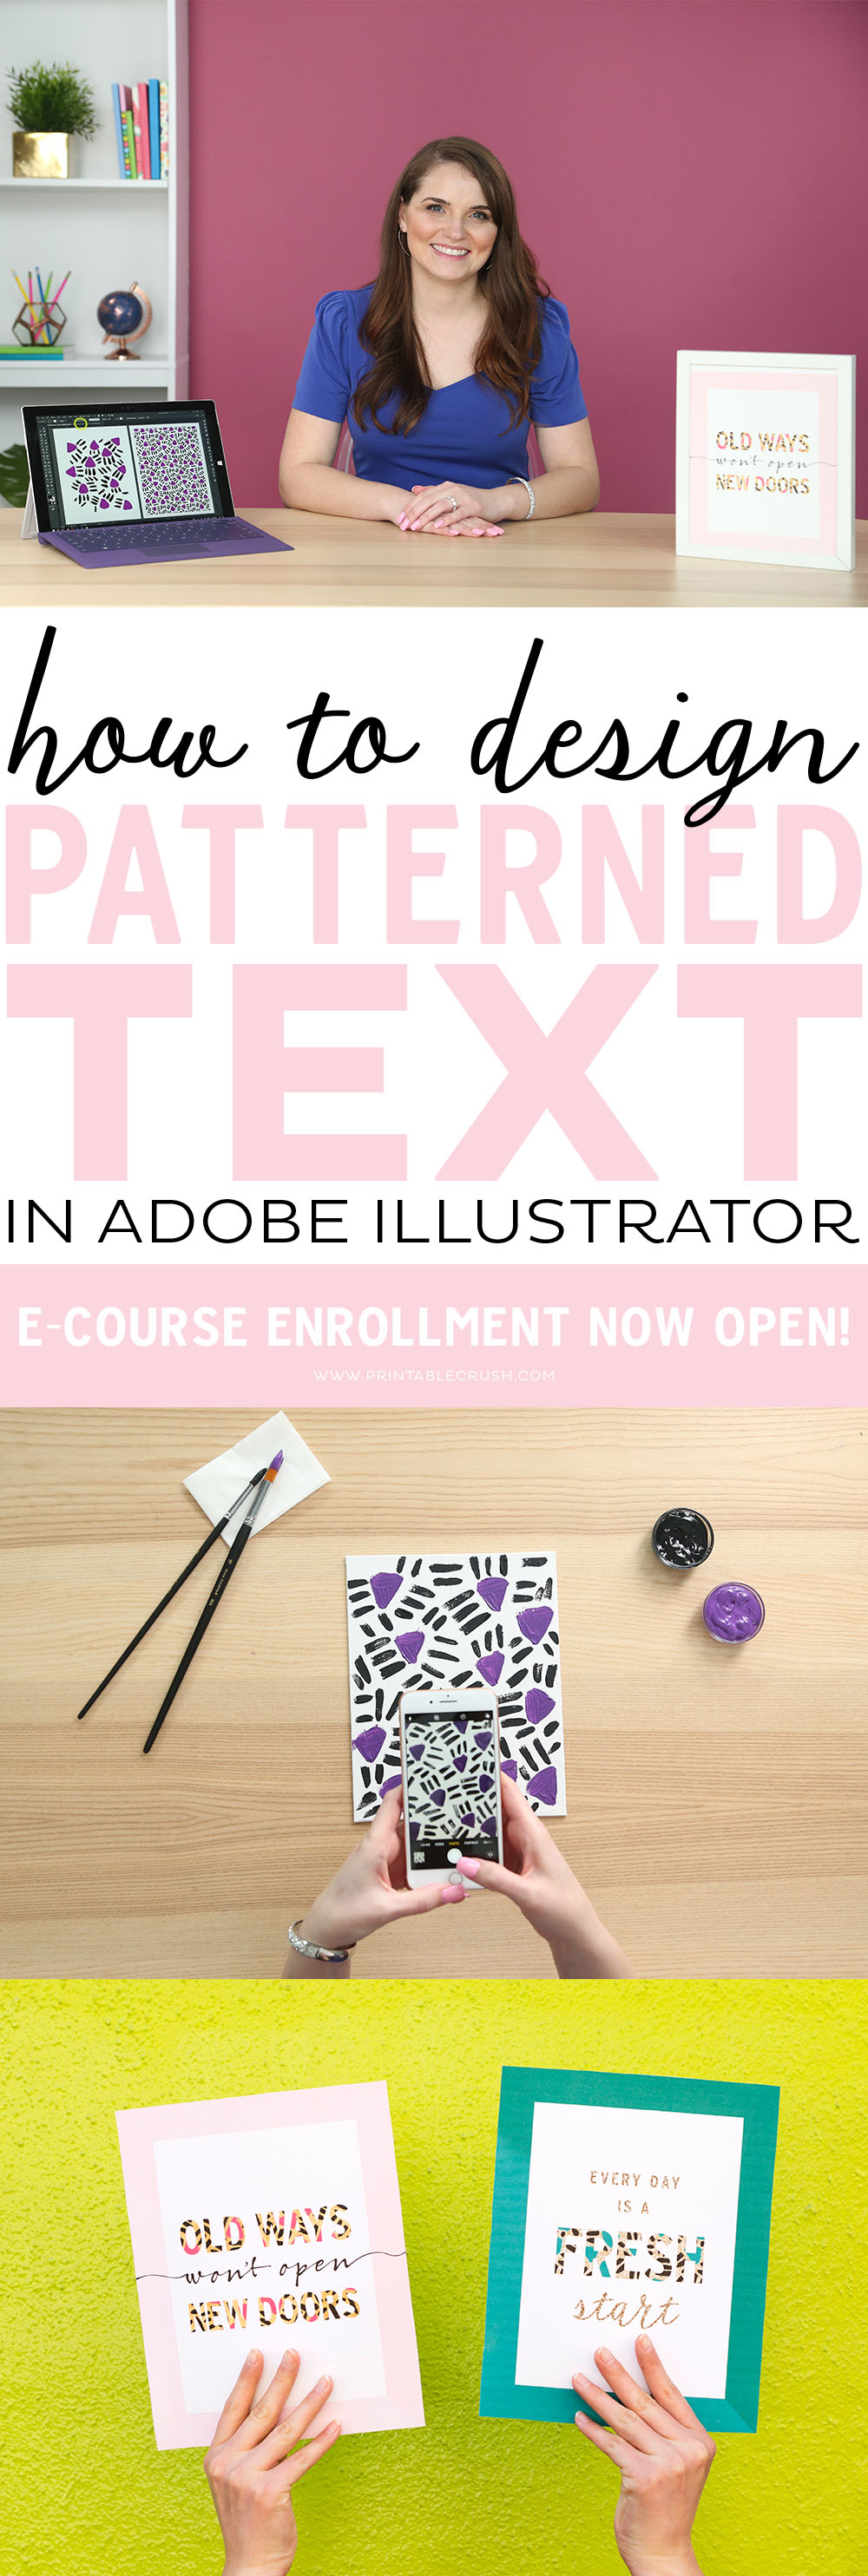 Learn how to create Patterns in Adobe Illustrator. I'm going over who needs this class, the supplies you'll need to have on hand, and what to expect when you take this course!